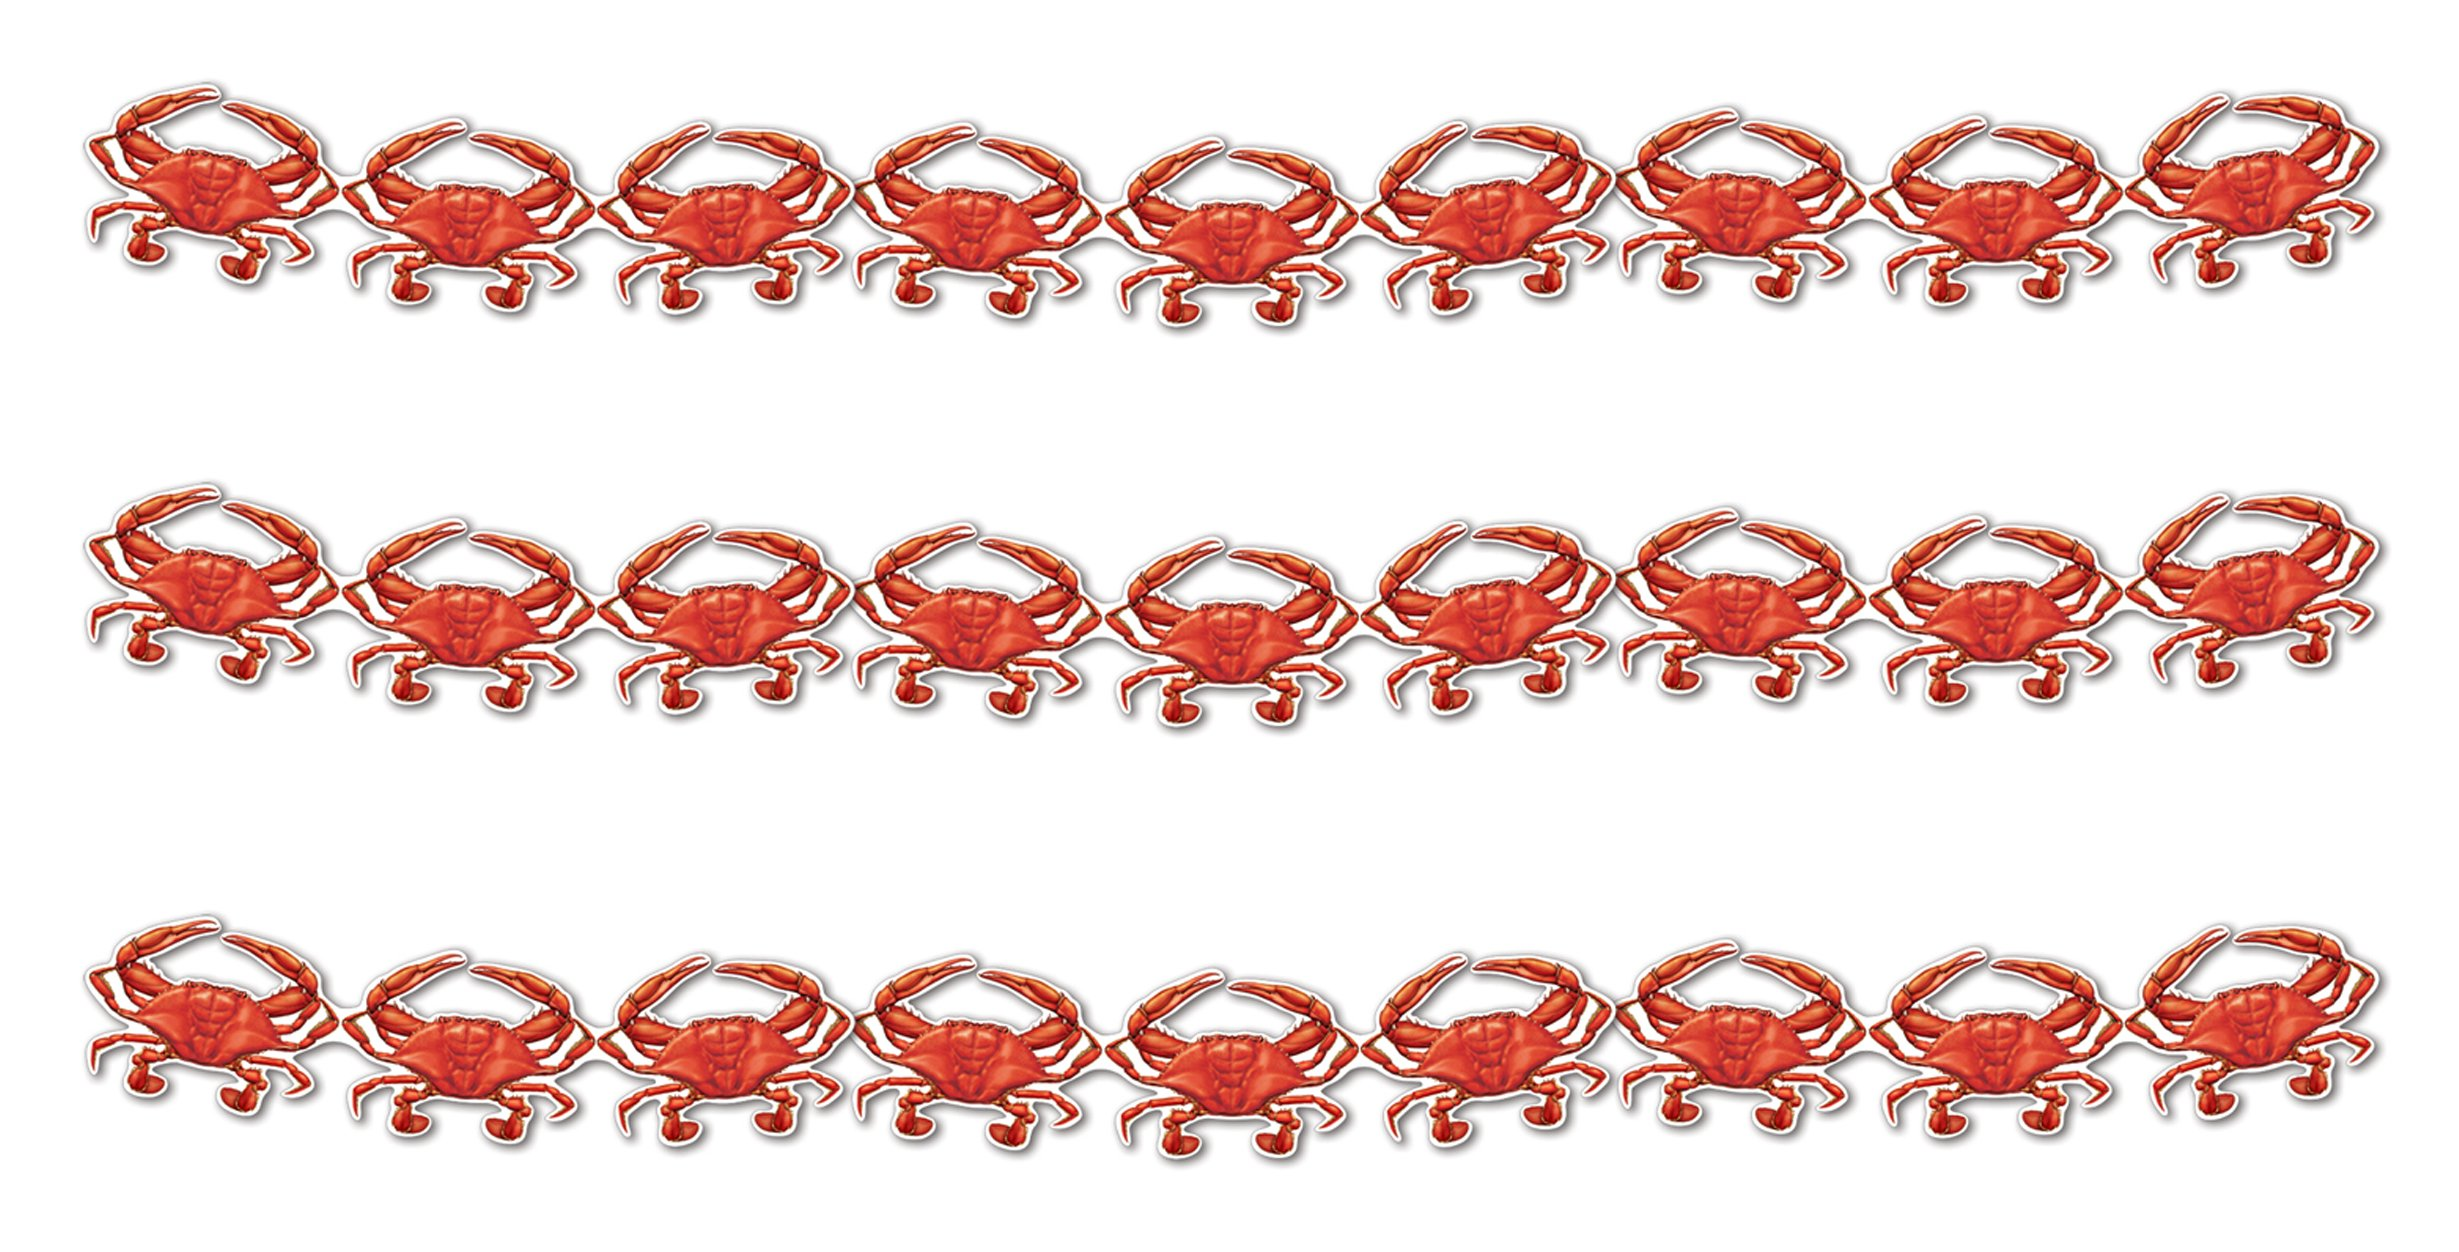 Beistle S57445AZ3, 3 Piece Crab Streamers, 6.5'' x 6' (Red/White) by Beistle